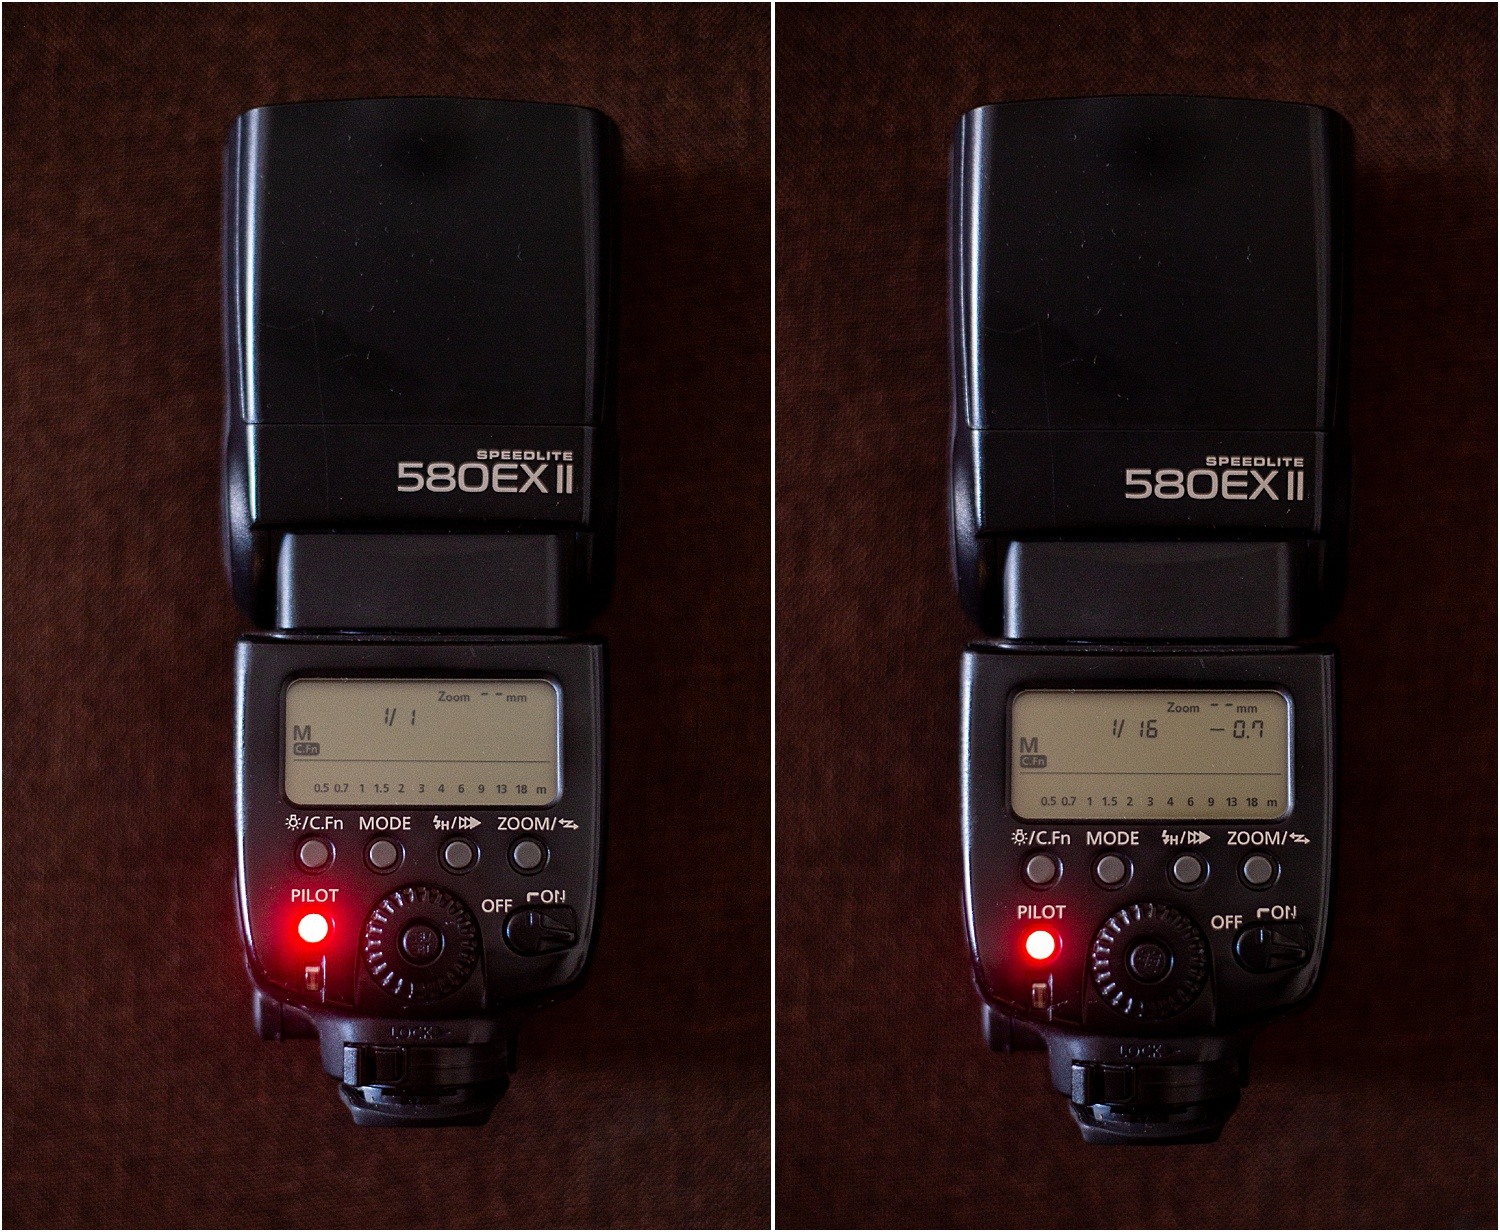 2 - Using Manual Mode on Your External Flash